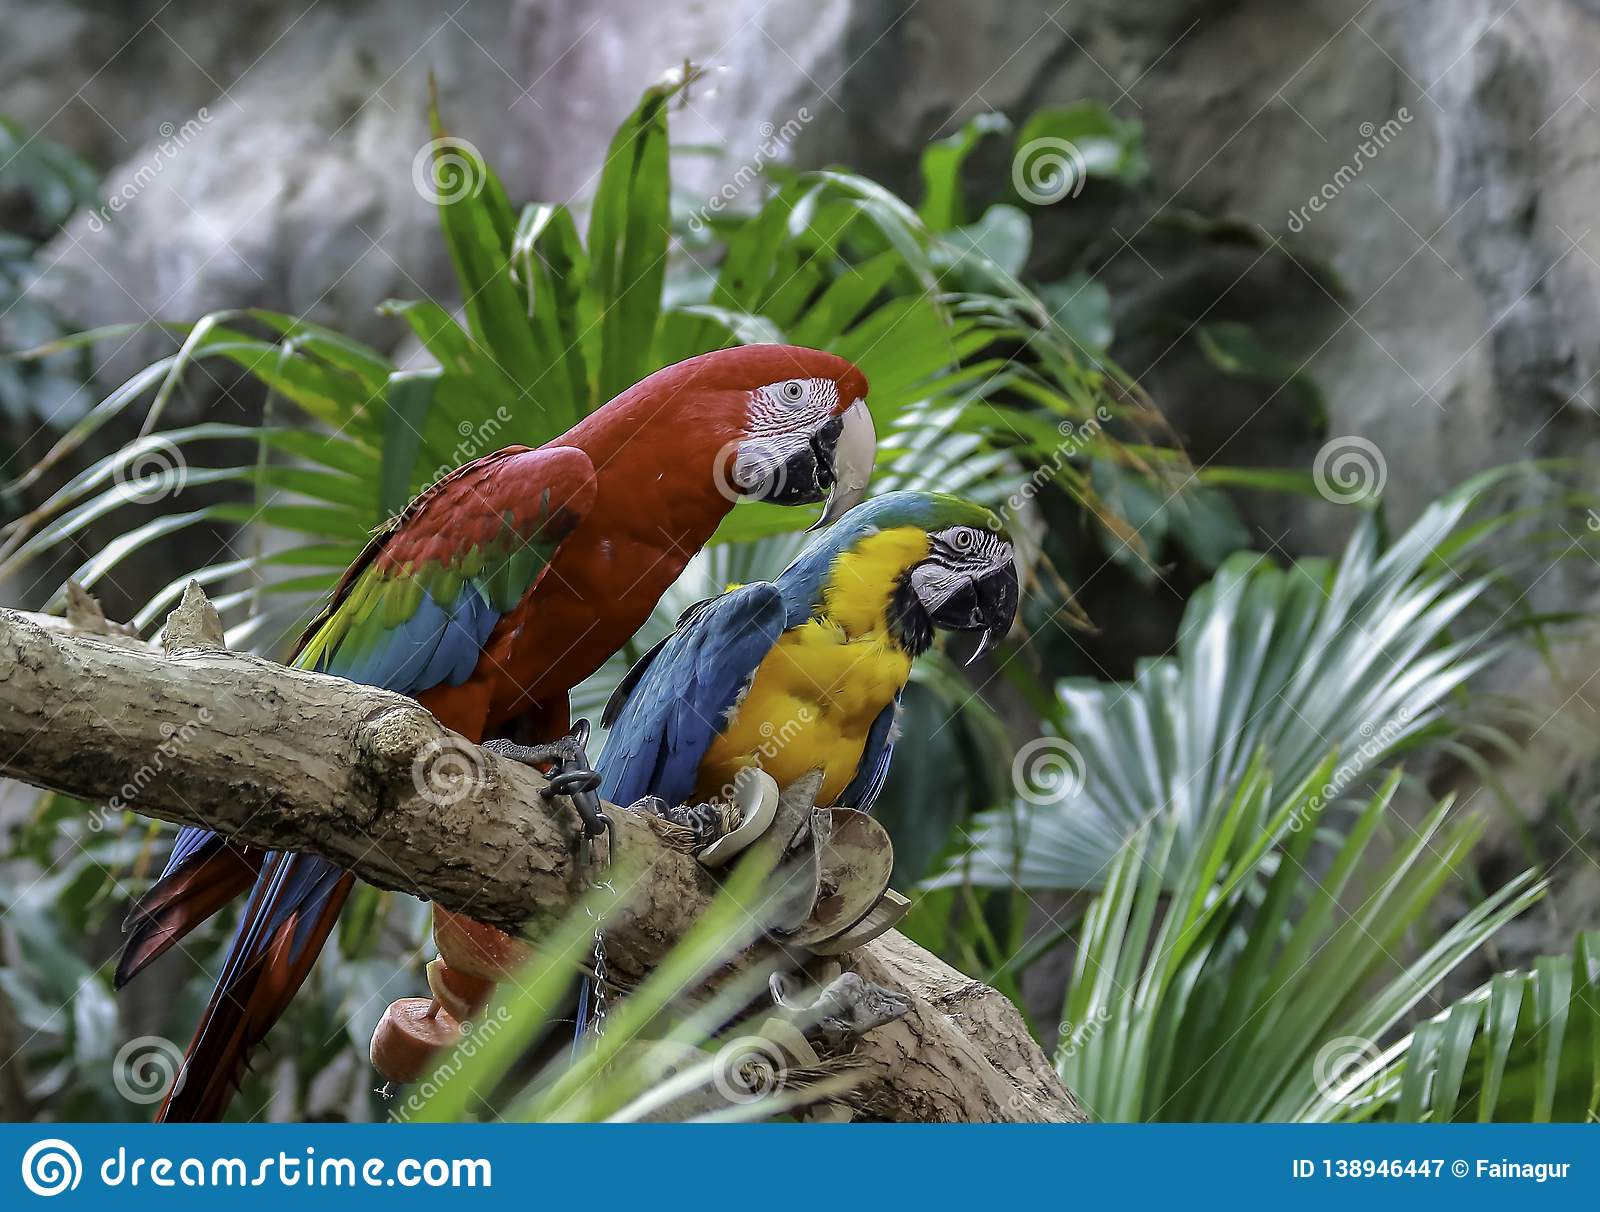 Green-winged Macaw, Blue and Gold Macaw sitting on a branch